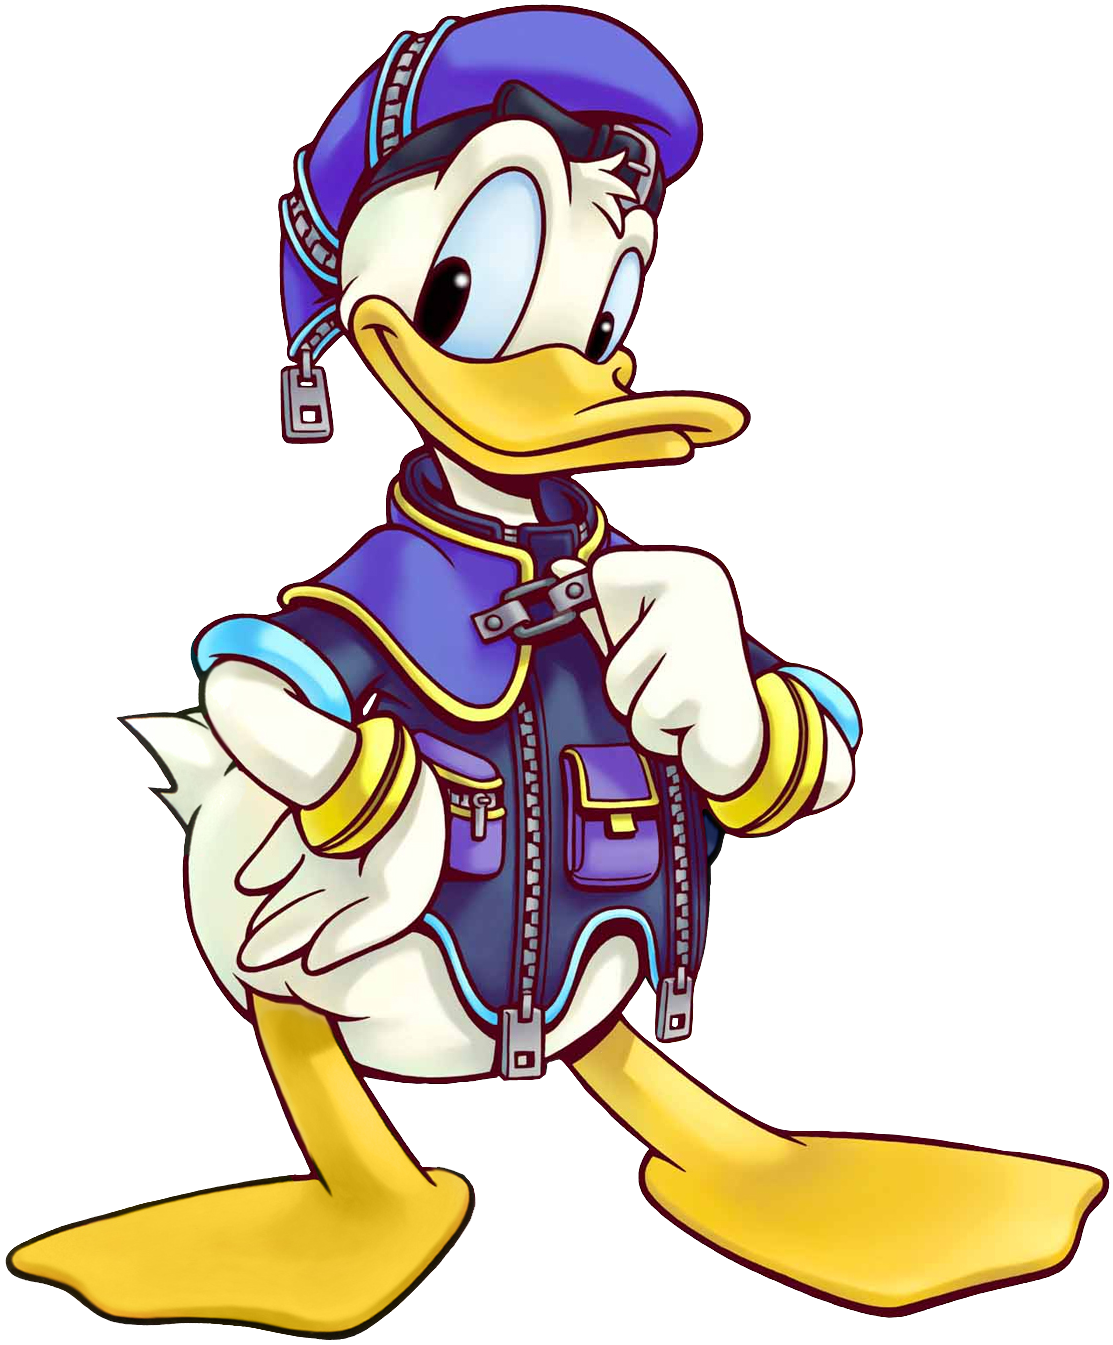 Image donald art kh. Kingdom hearts png